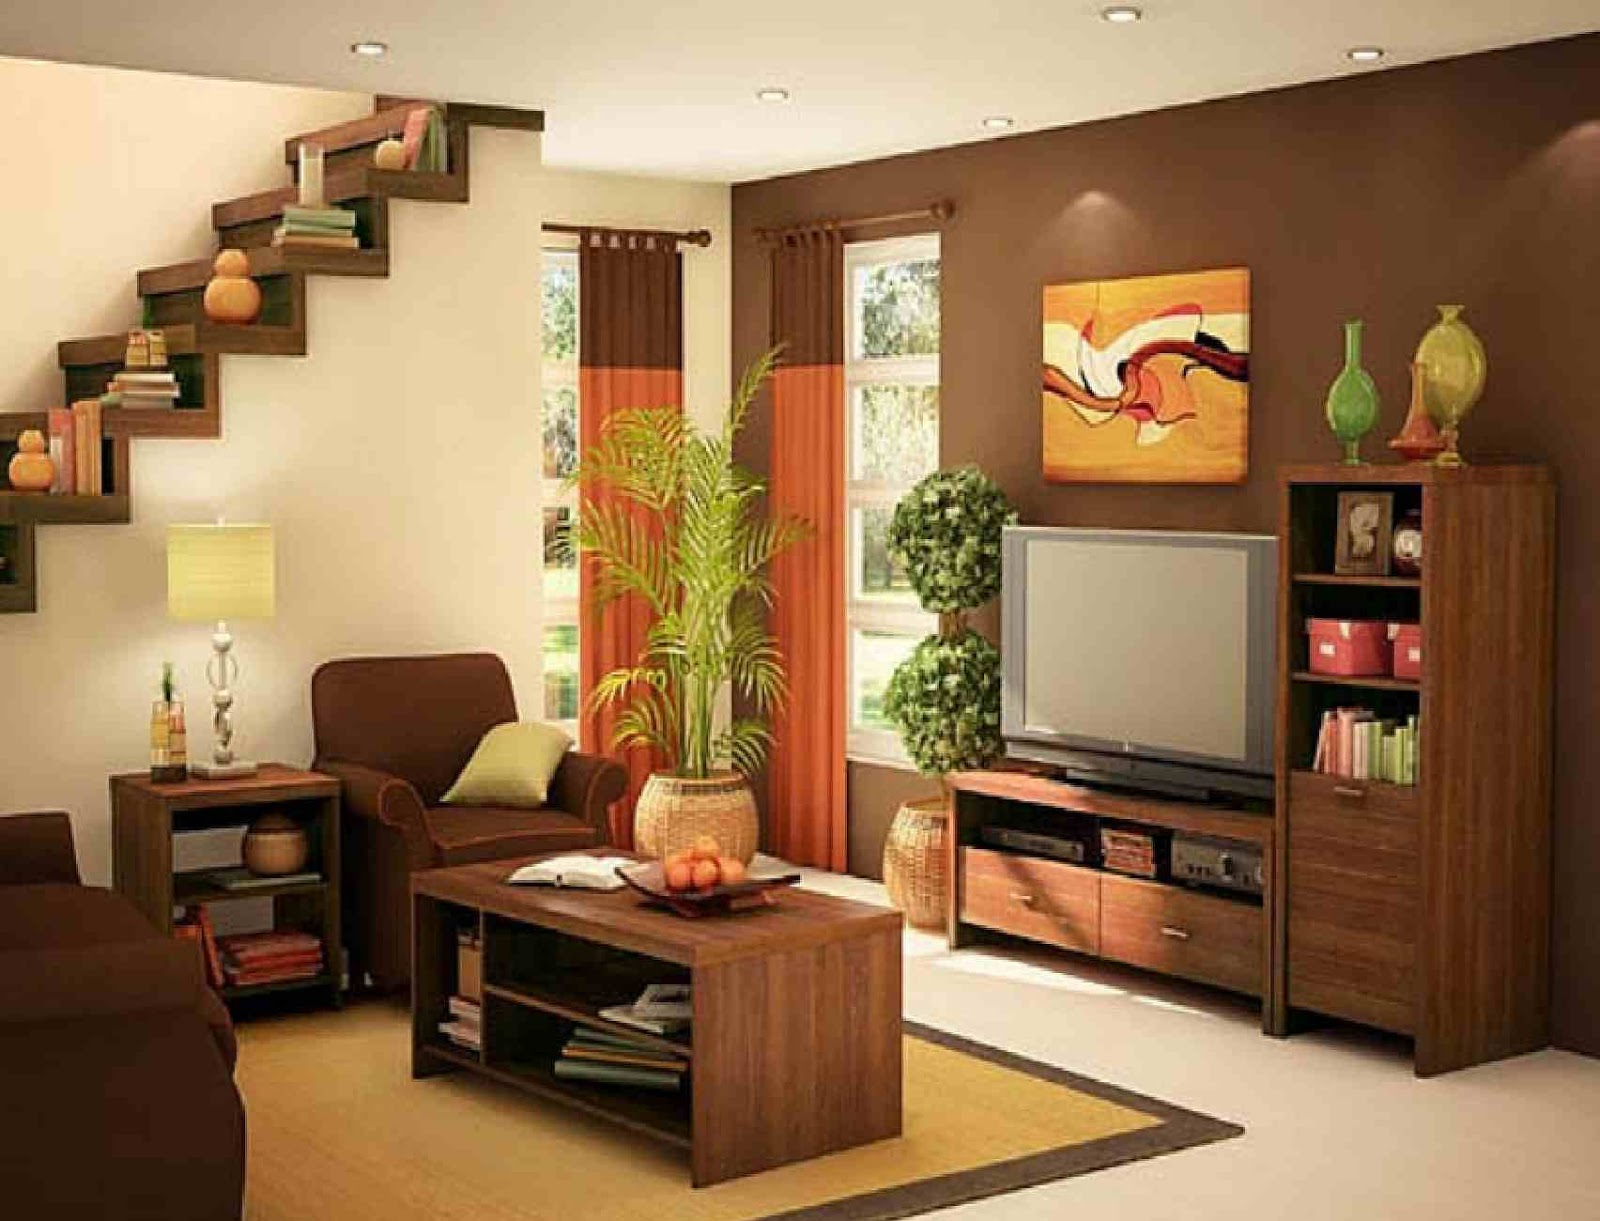 Simple Livingroom Elegance Simple Living Room Design Furniture - Living room interior design